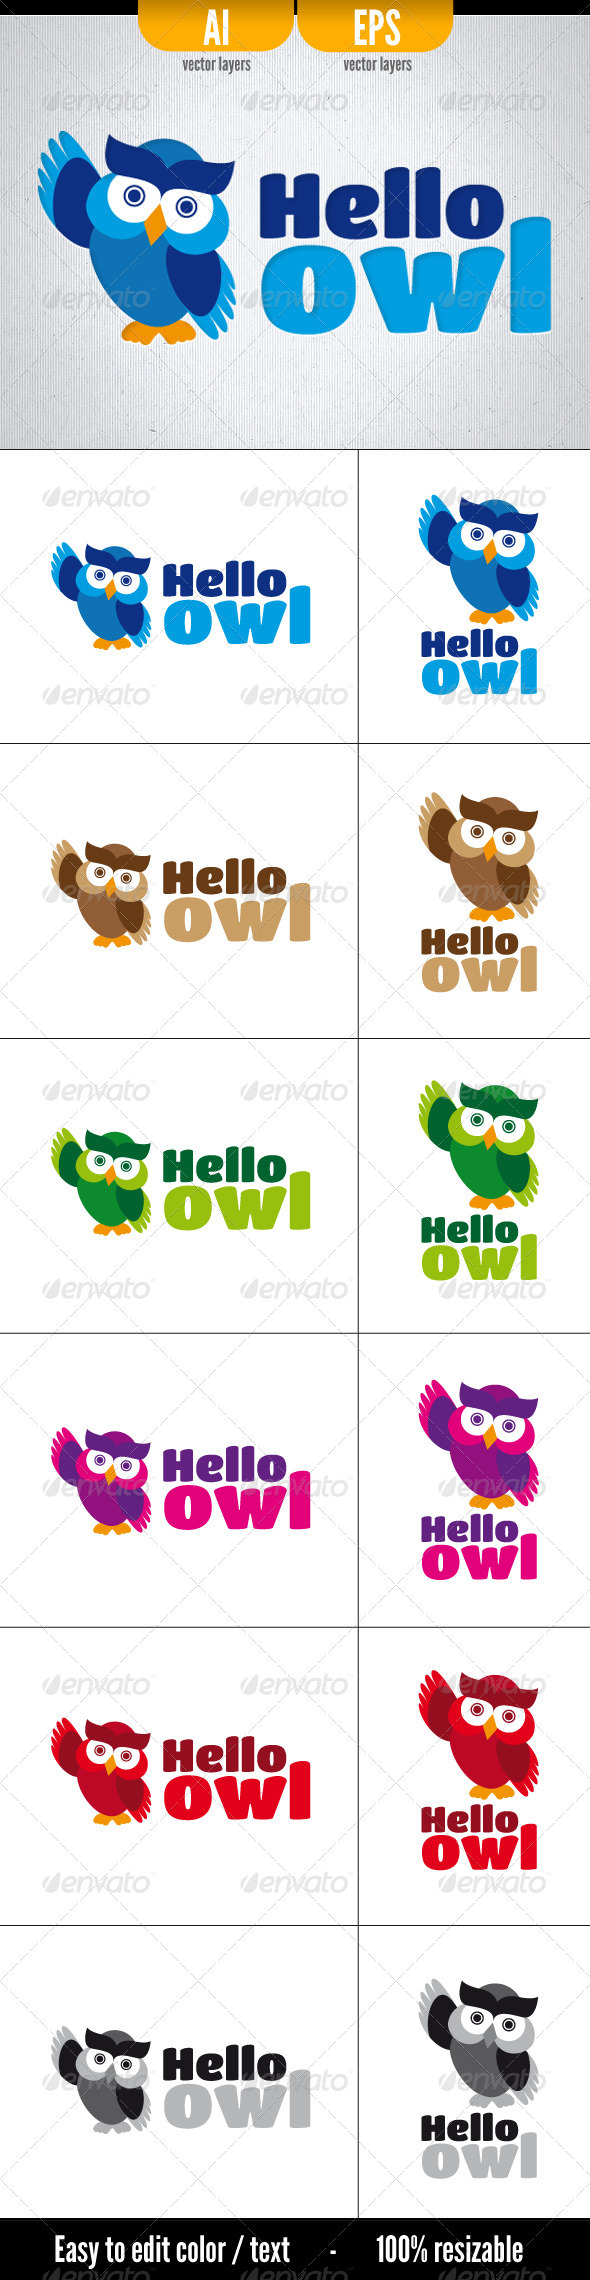 GraphicRiver Hello Owl 3449896